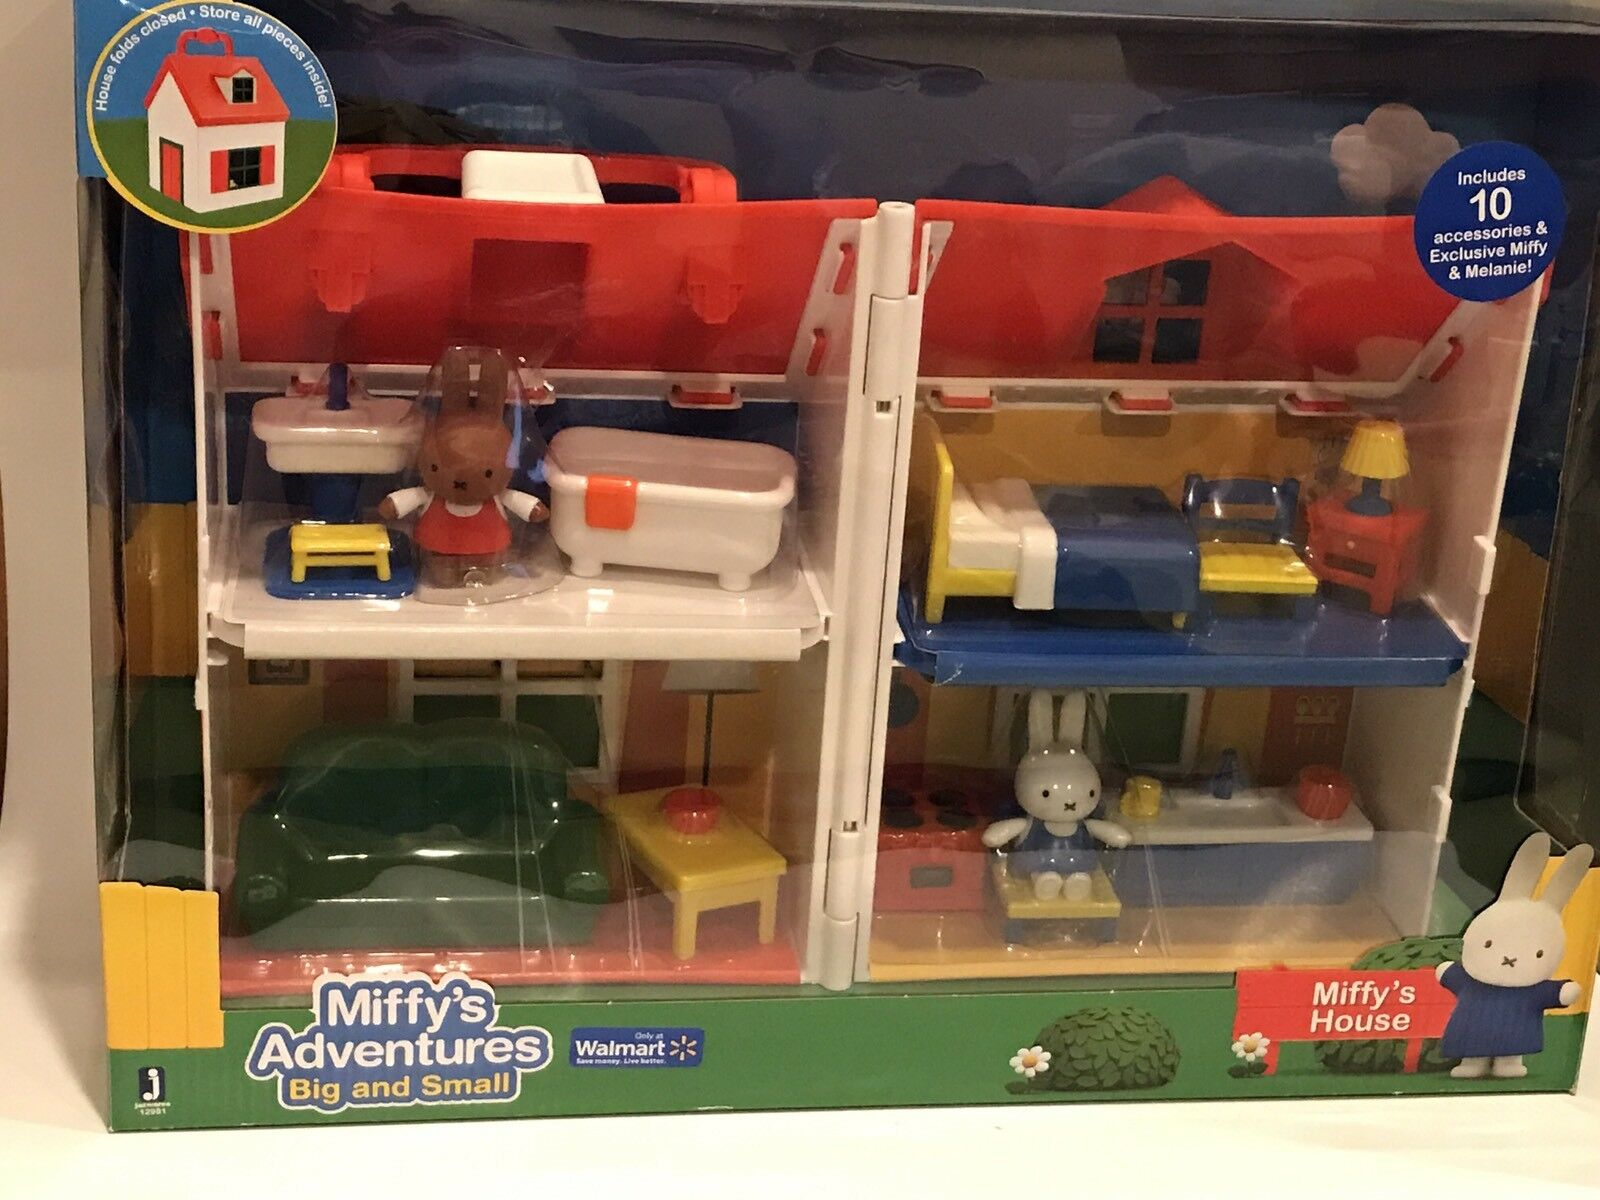 NIB MIFFY'S HOUSE Playset Adventures Big & Small Furniture Melanie Figures Set